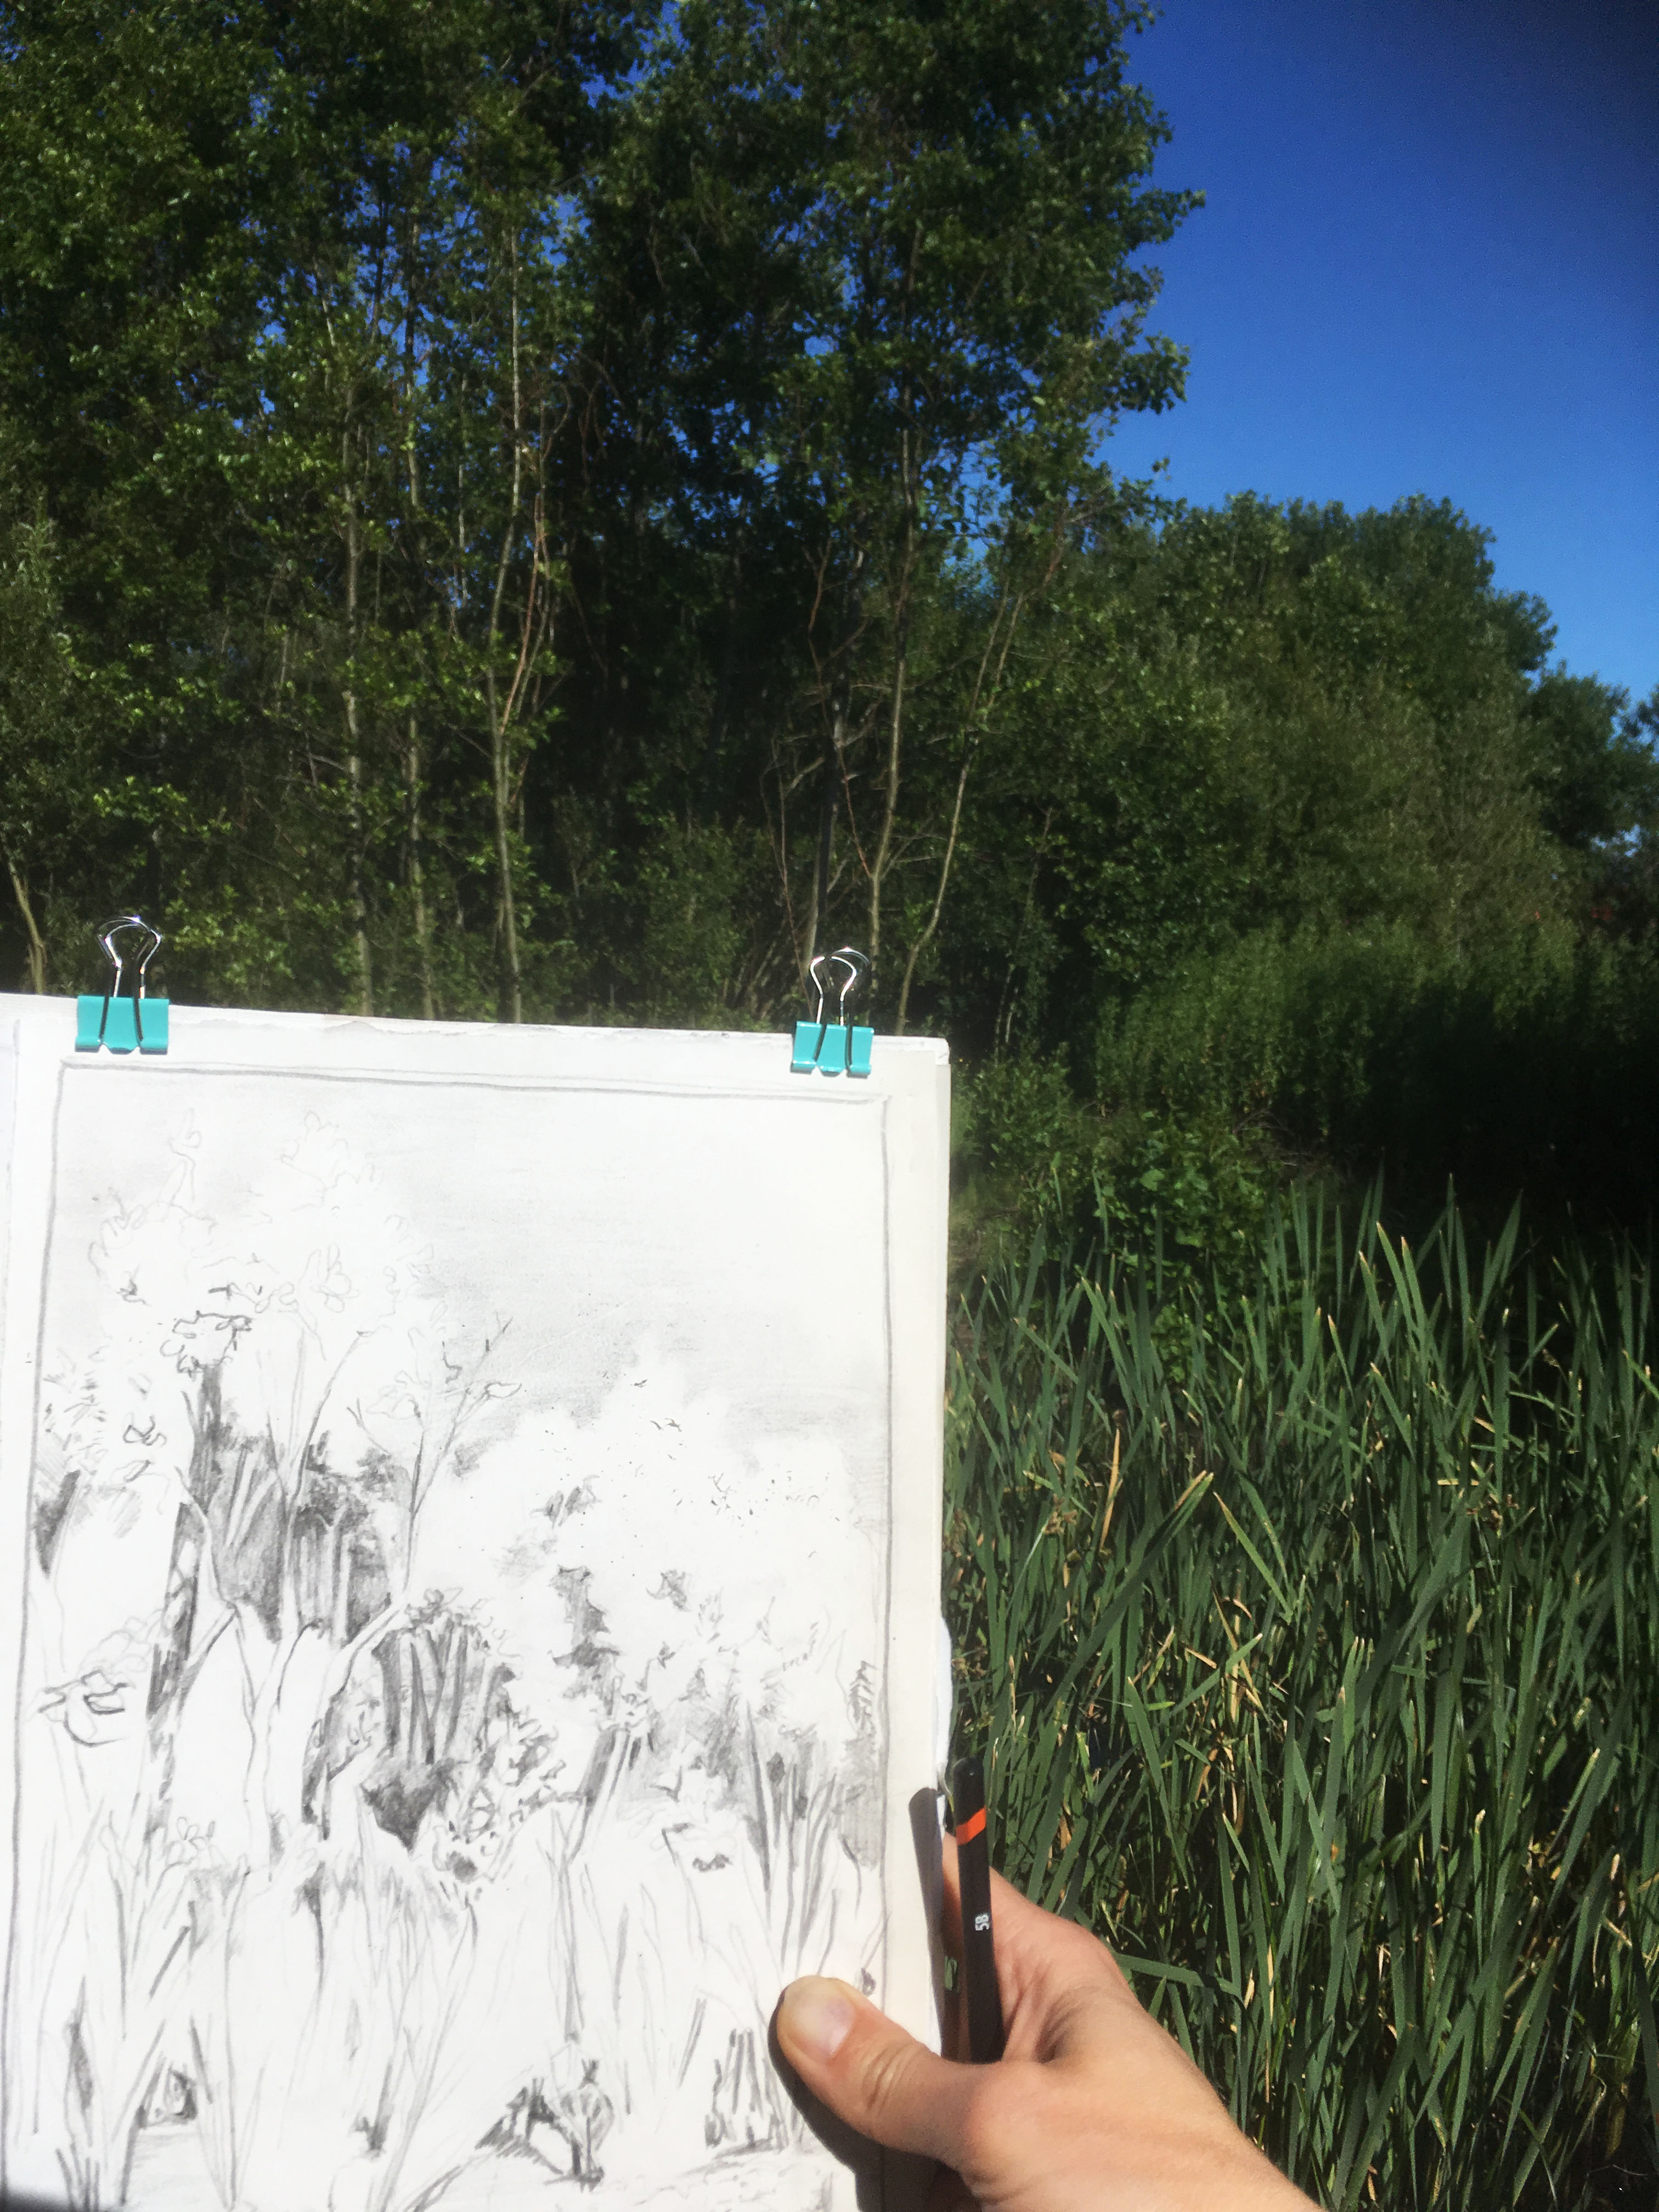 Crosby Marine Lake: Gems in the Dunes, Outdoor Adult Drawing Workshop